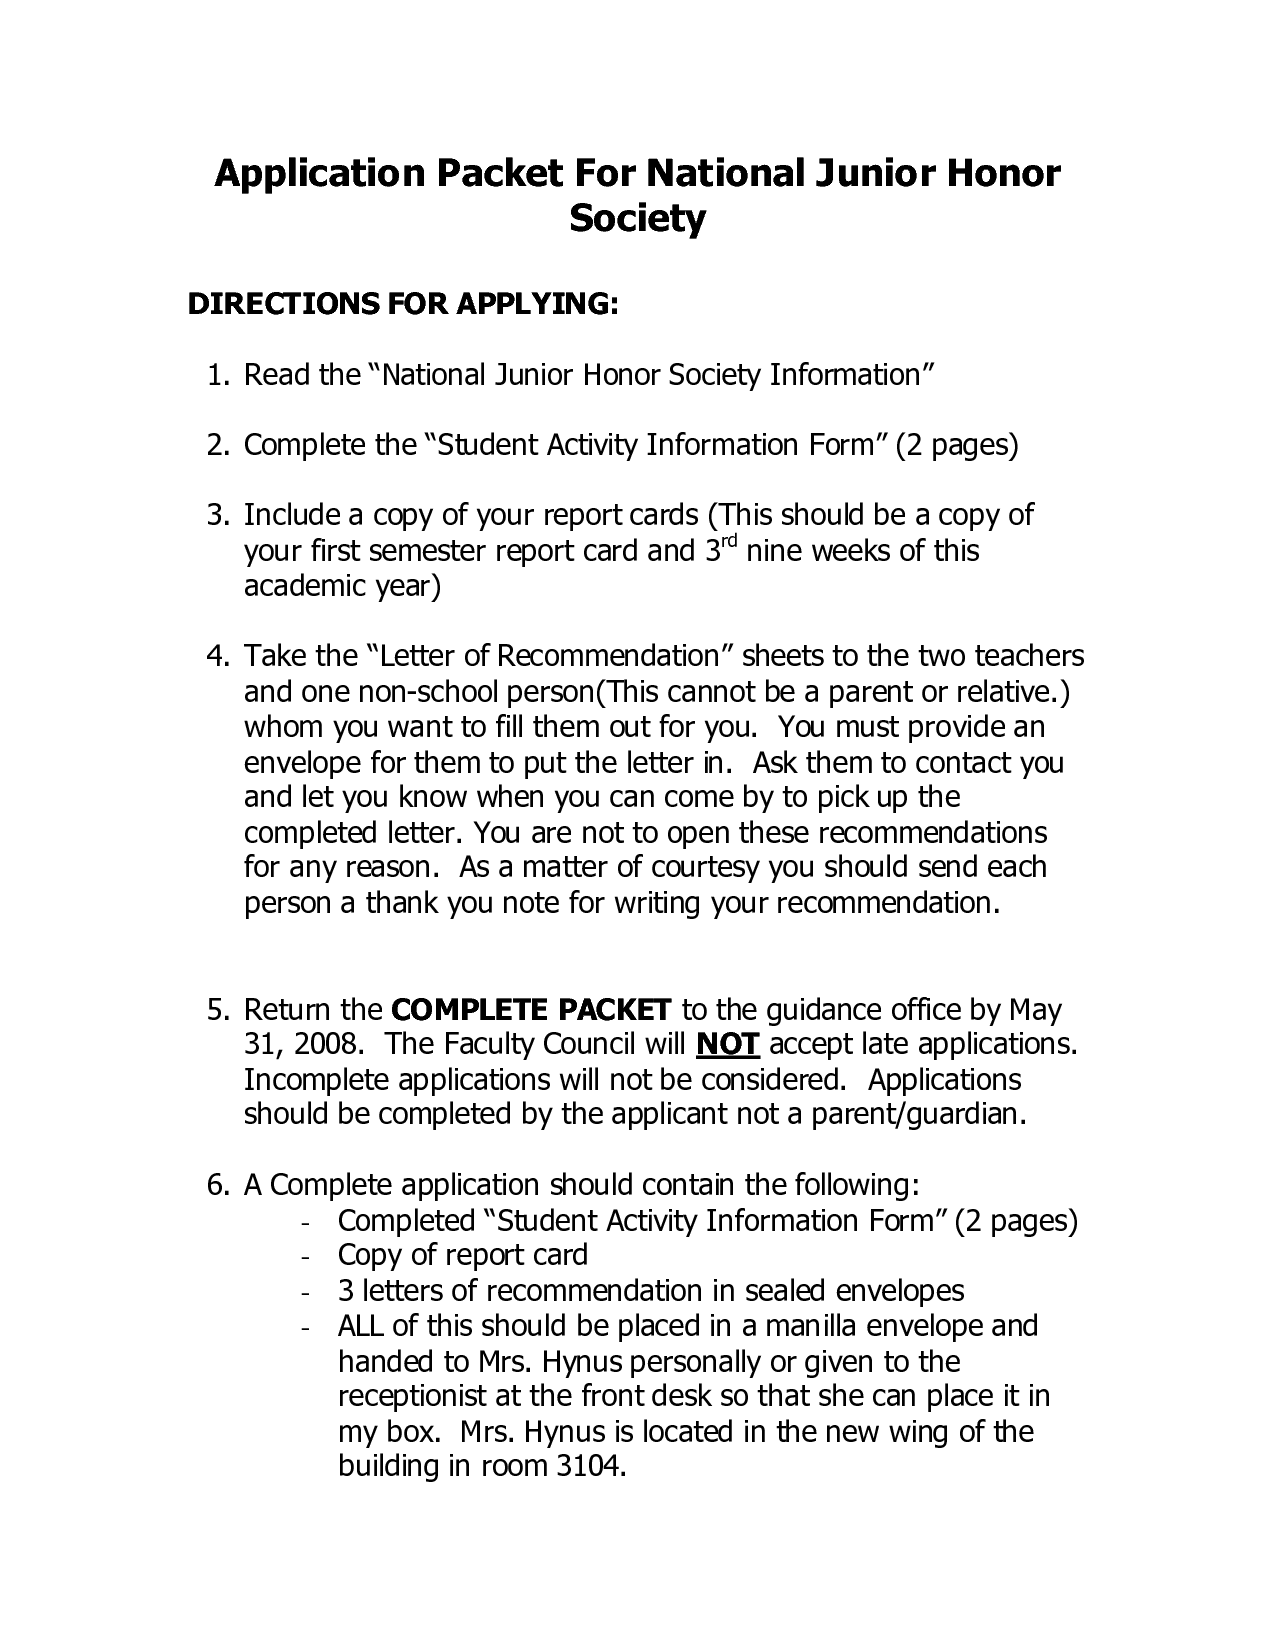 Apa Format For Essay Paper  How To Write A Proposal Essay Outline also Terrorism Essay In English  National Junior Honor Society Essay Samples Example  Independence Day Essay In English